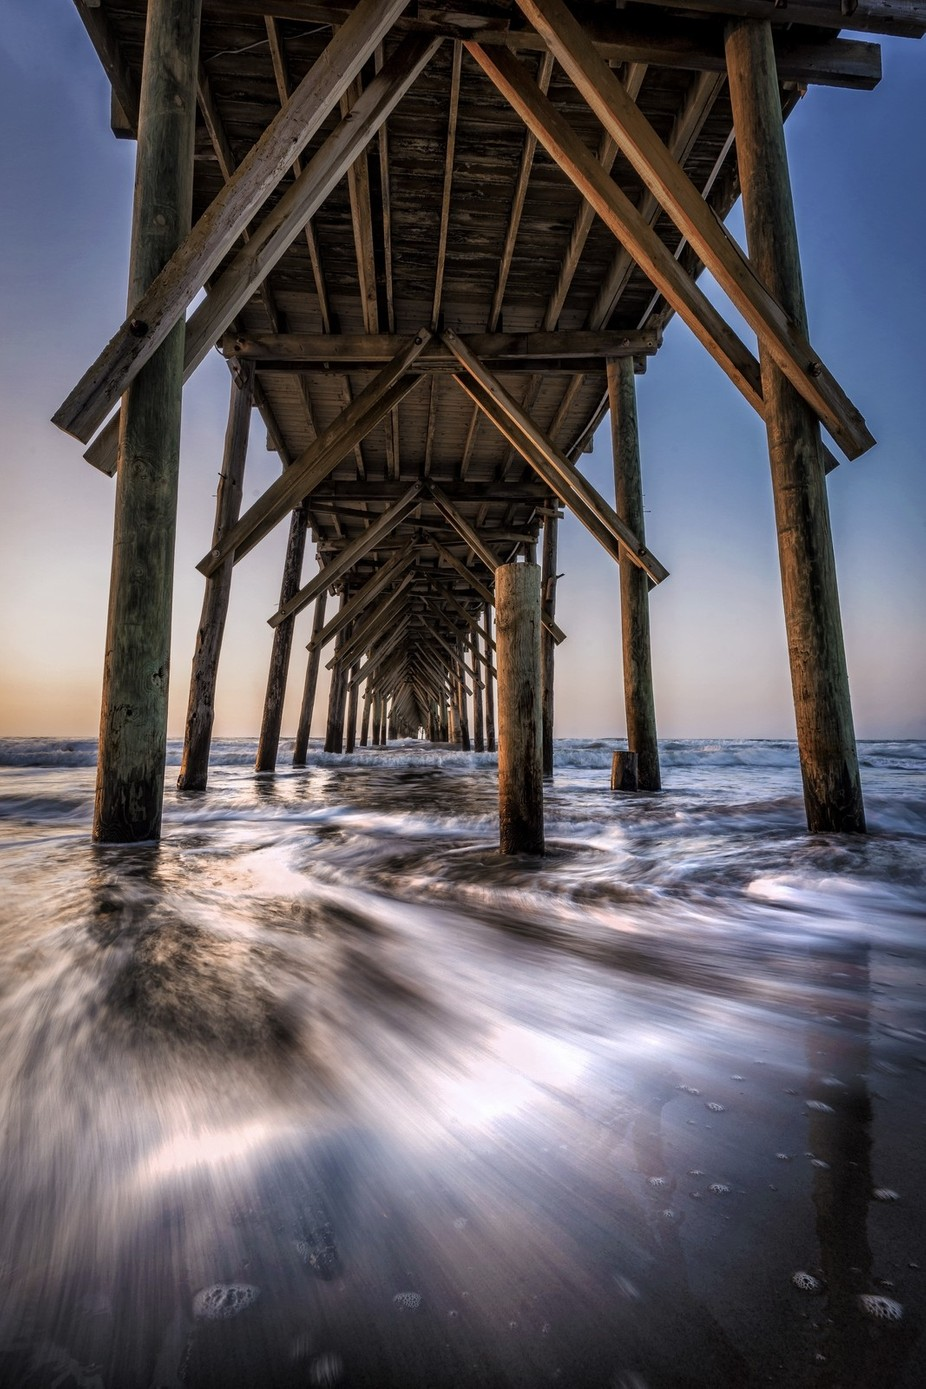 Picturesque by LarryGreene - The View Under The Pier Photo Contest